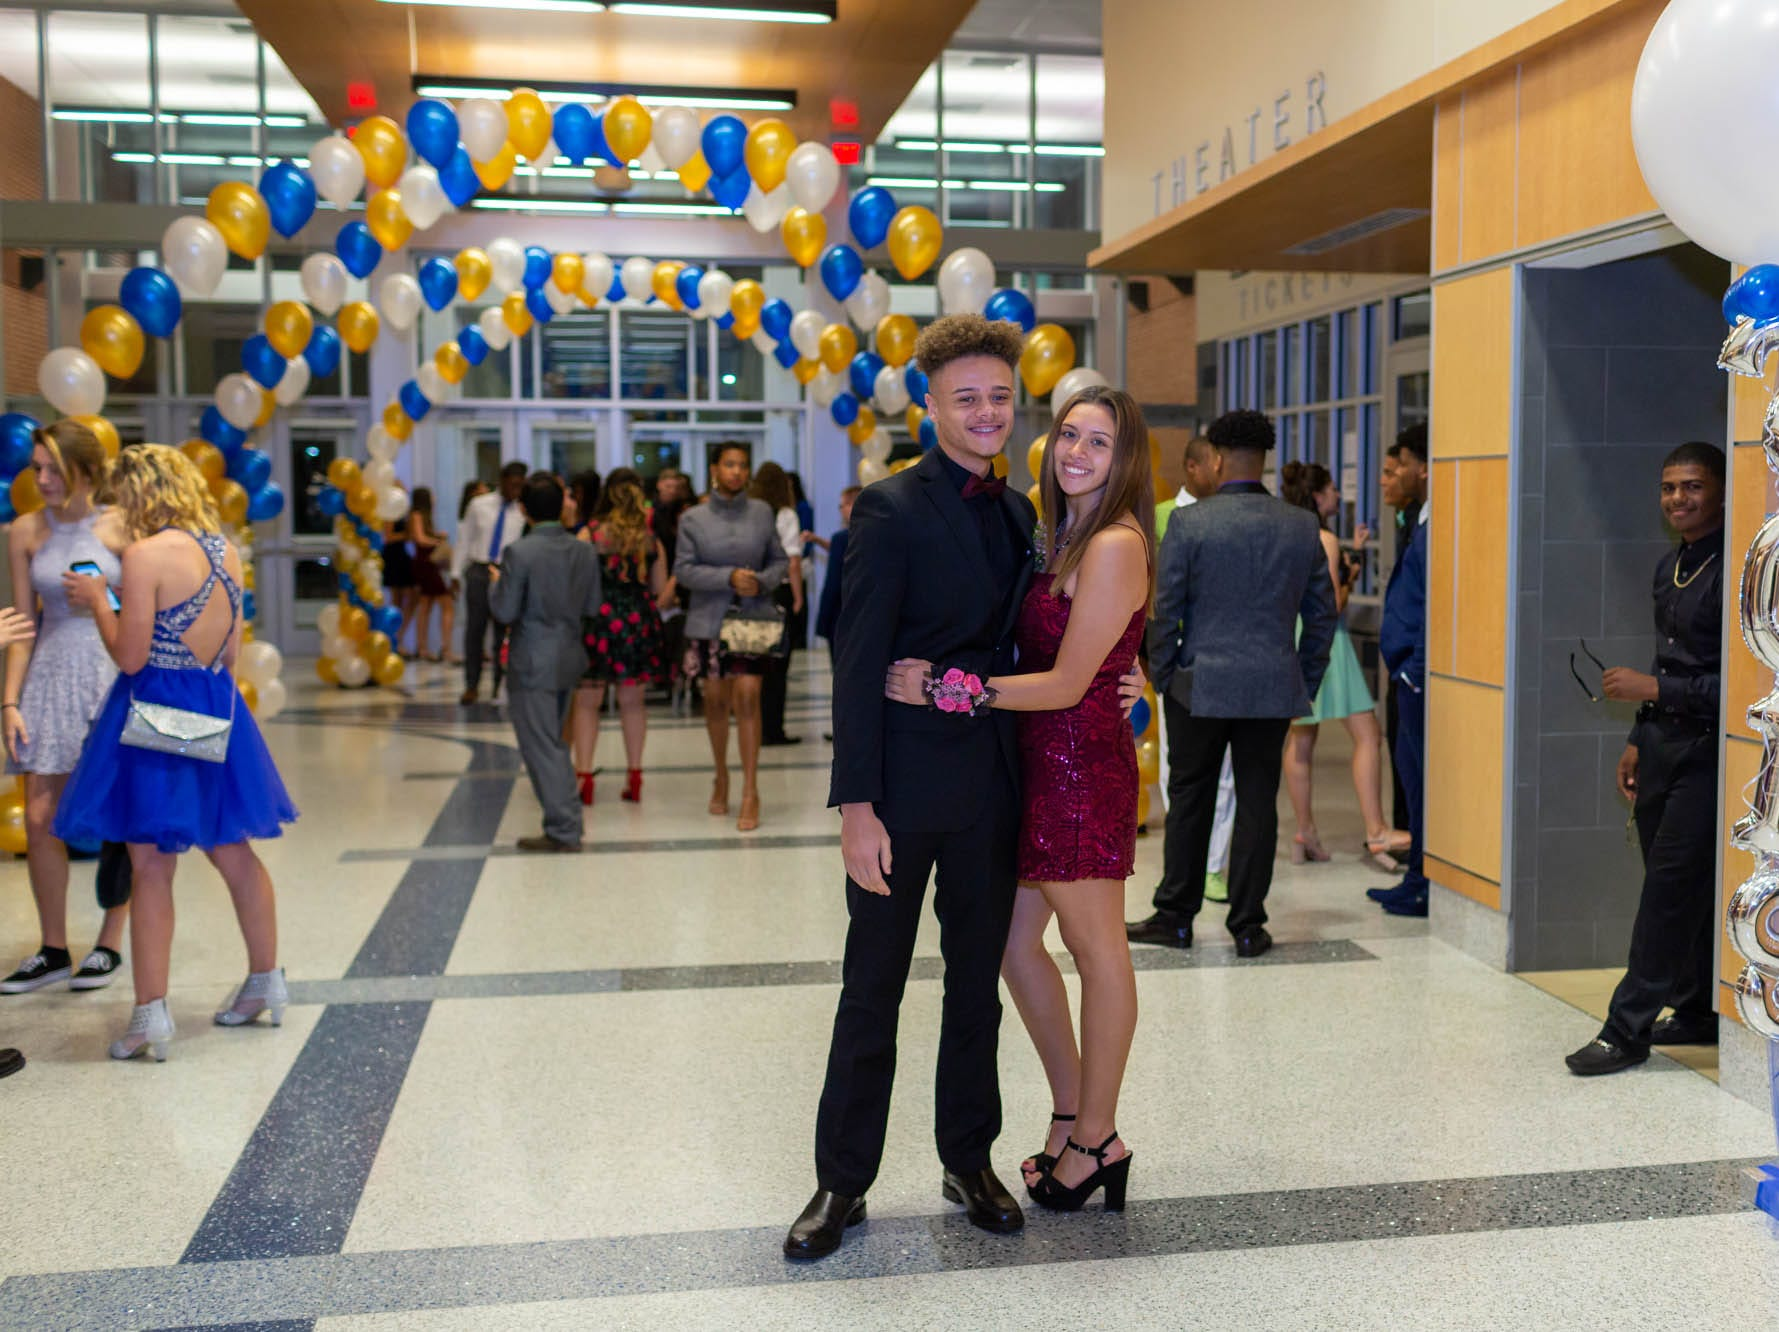 Students attend the Dover High School homecoming dance Saturday, Oct. 13, 2018 at the school.